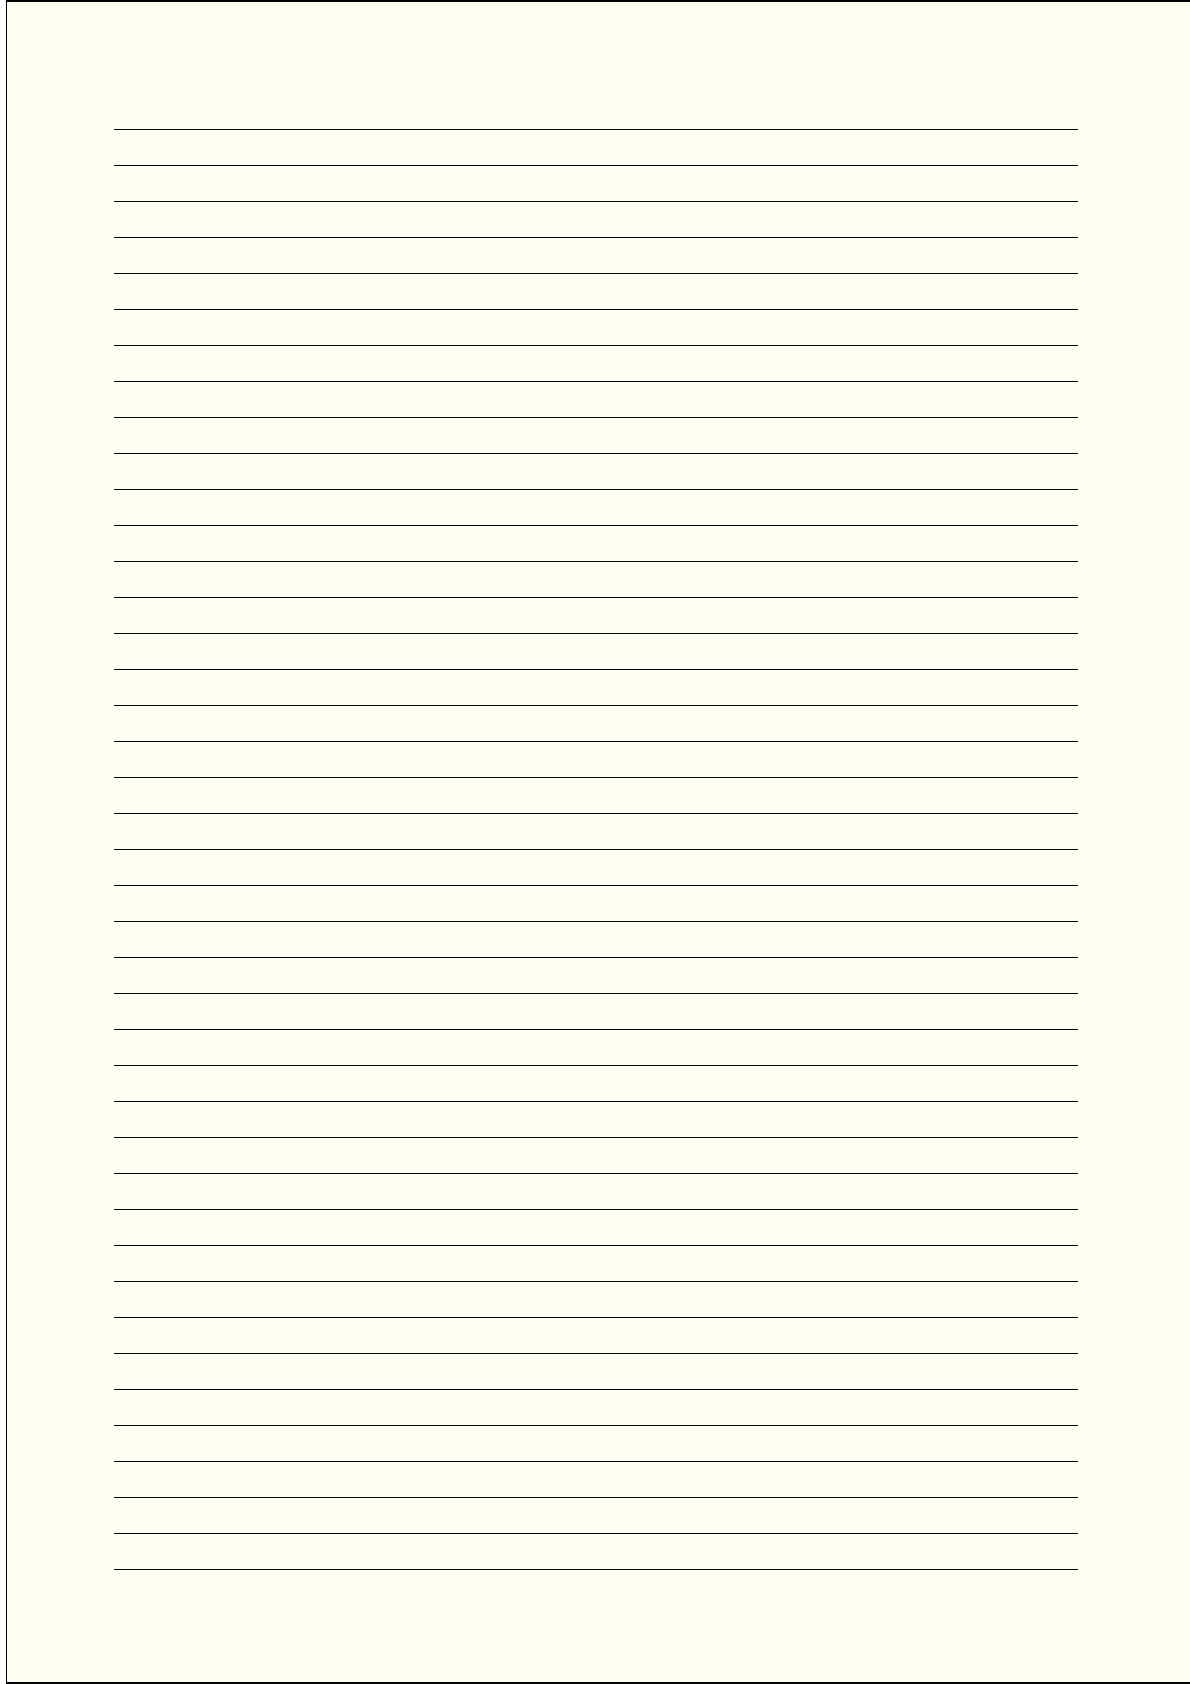 Microsoft ...  Lined Blank Paper